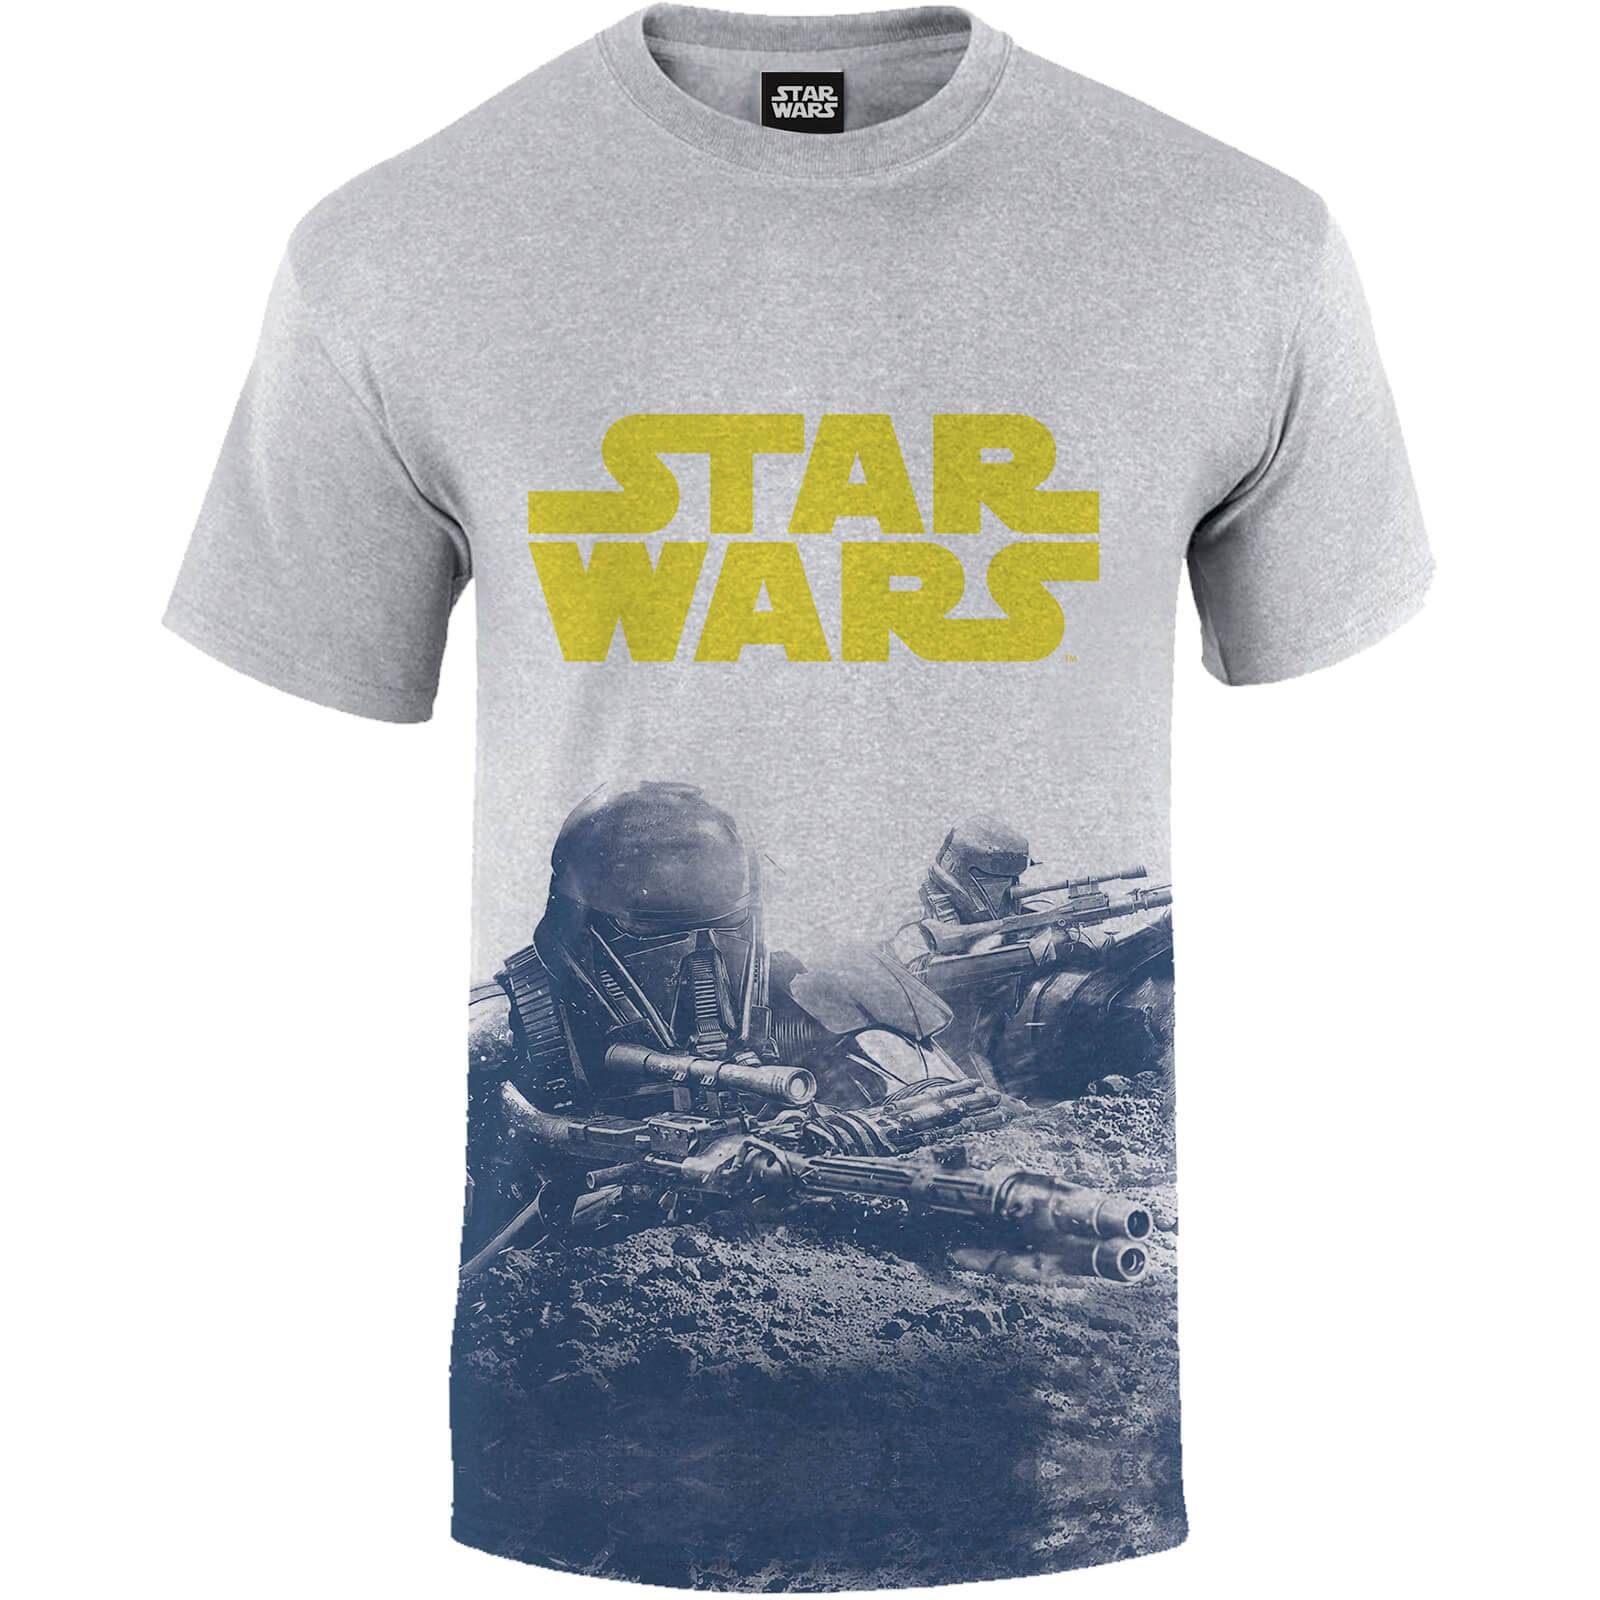 Geek Clothing Star Wars Rogue One Men's Blue Death Trooper Print T-Shirt - Grey - S - Grey